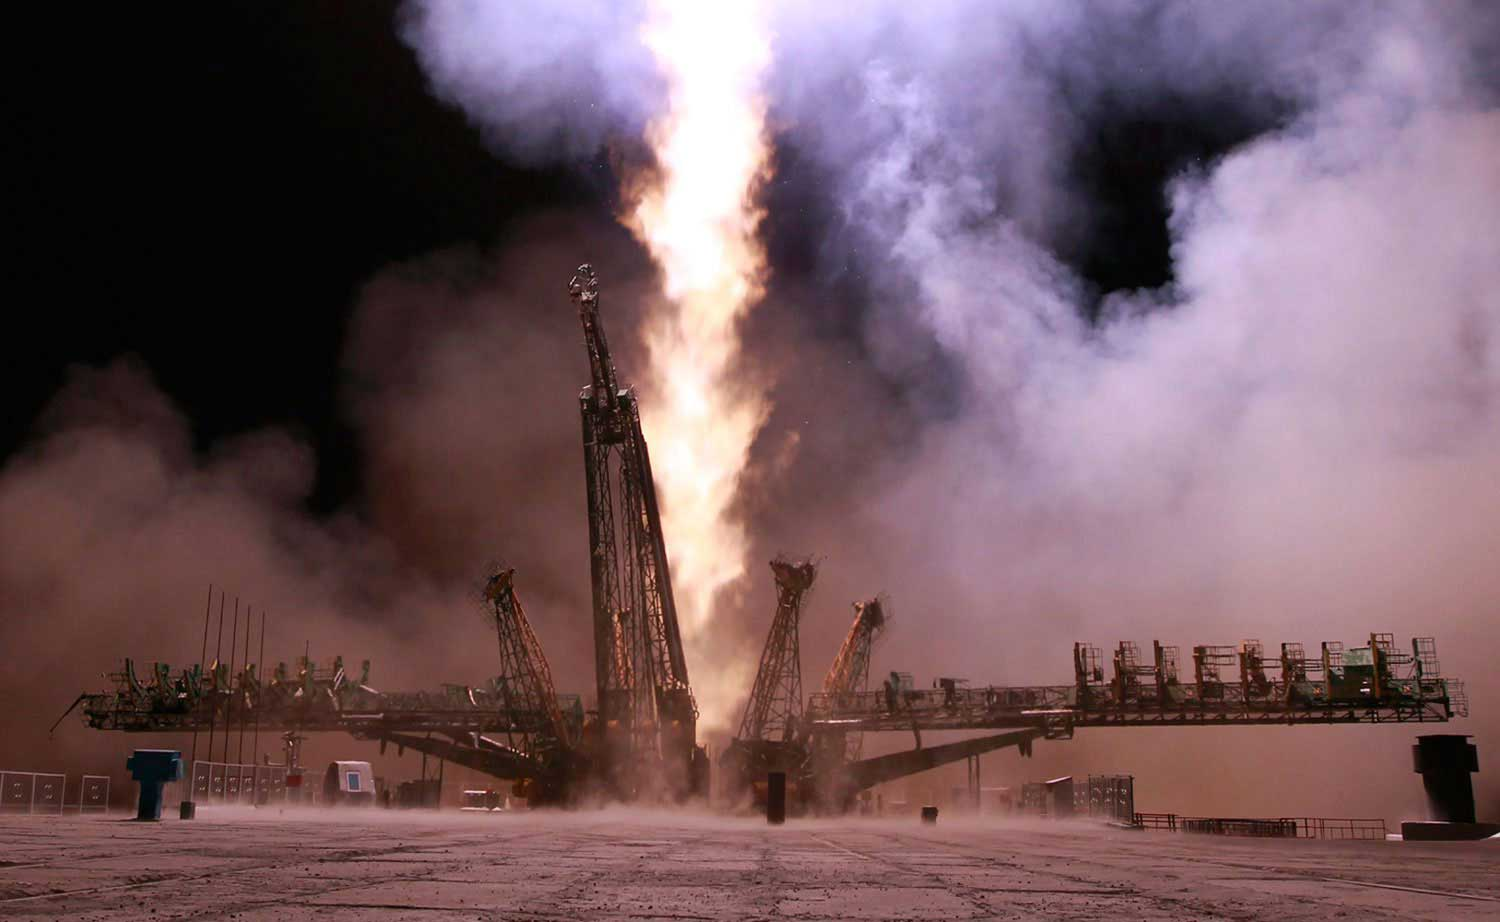 The Soyuz TMA-10M blasts off from the Baikonur cosmodrome in Kazakhstan, on Sept. 26, 2013, carrying Russian cosmonauts Sergey Ryazanskiy and Oleg Kotov and NASA astronaut Mike Hopkins to the International Space Station (ISS).